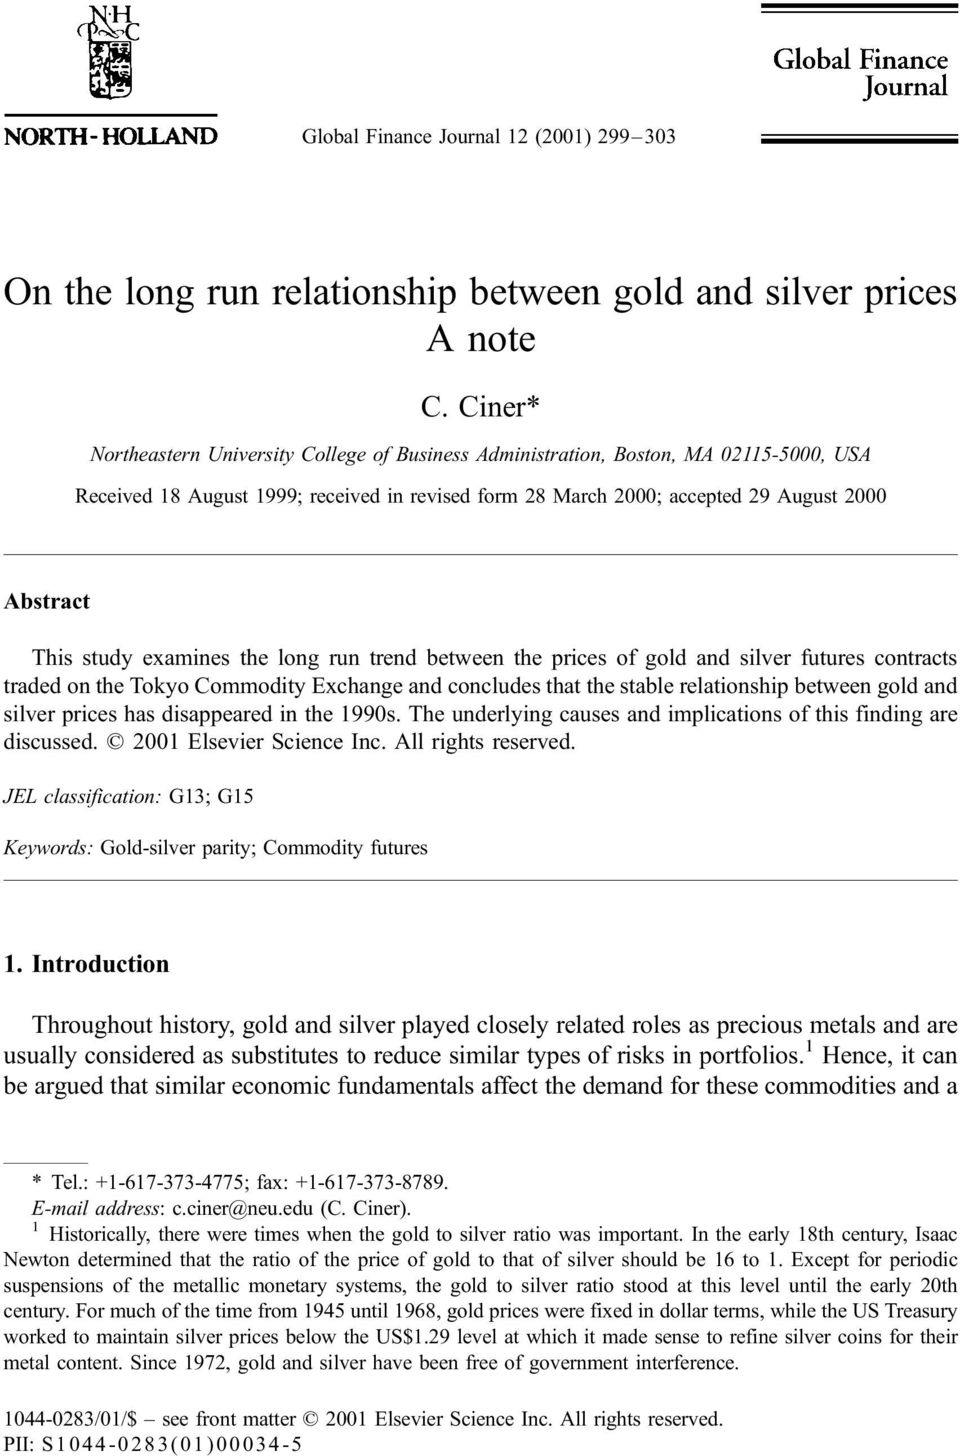 study examines the long run trend between the prices of gold and silver futures contracts traded on the Tokyo Commodity Exchange and concludes that the stable relationship between gold and silver